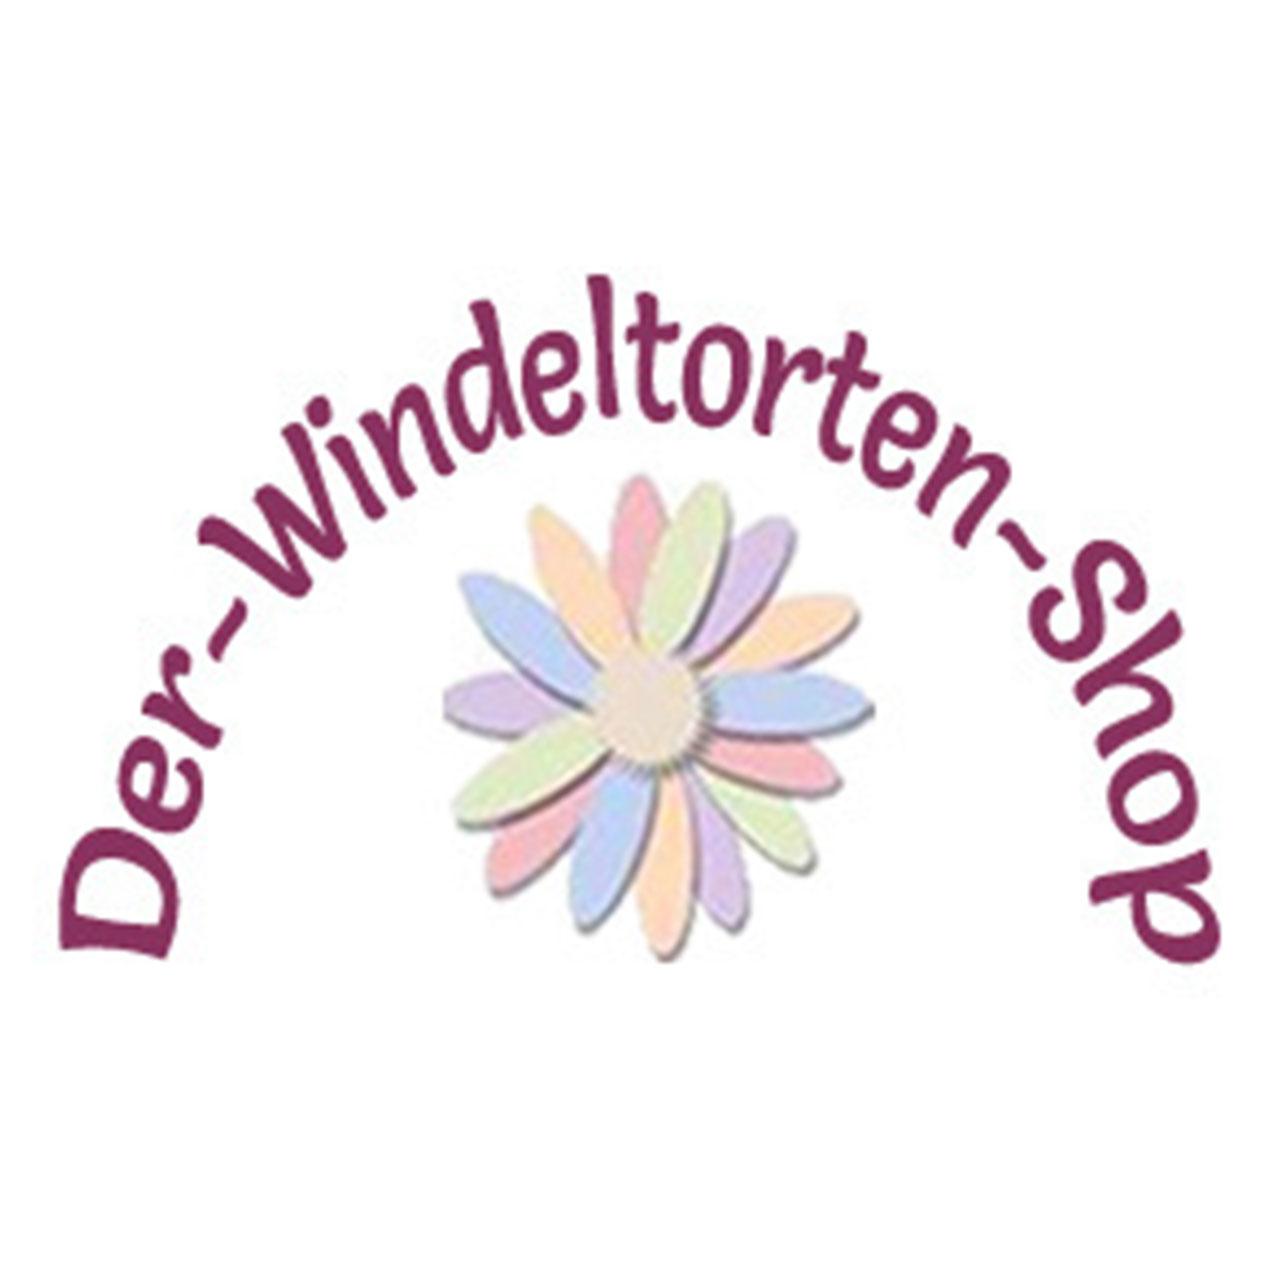 Der Windeltorten-Shop